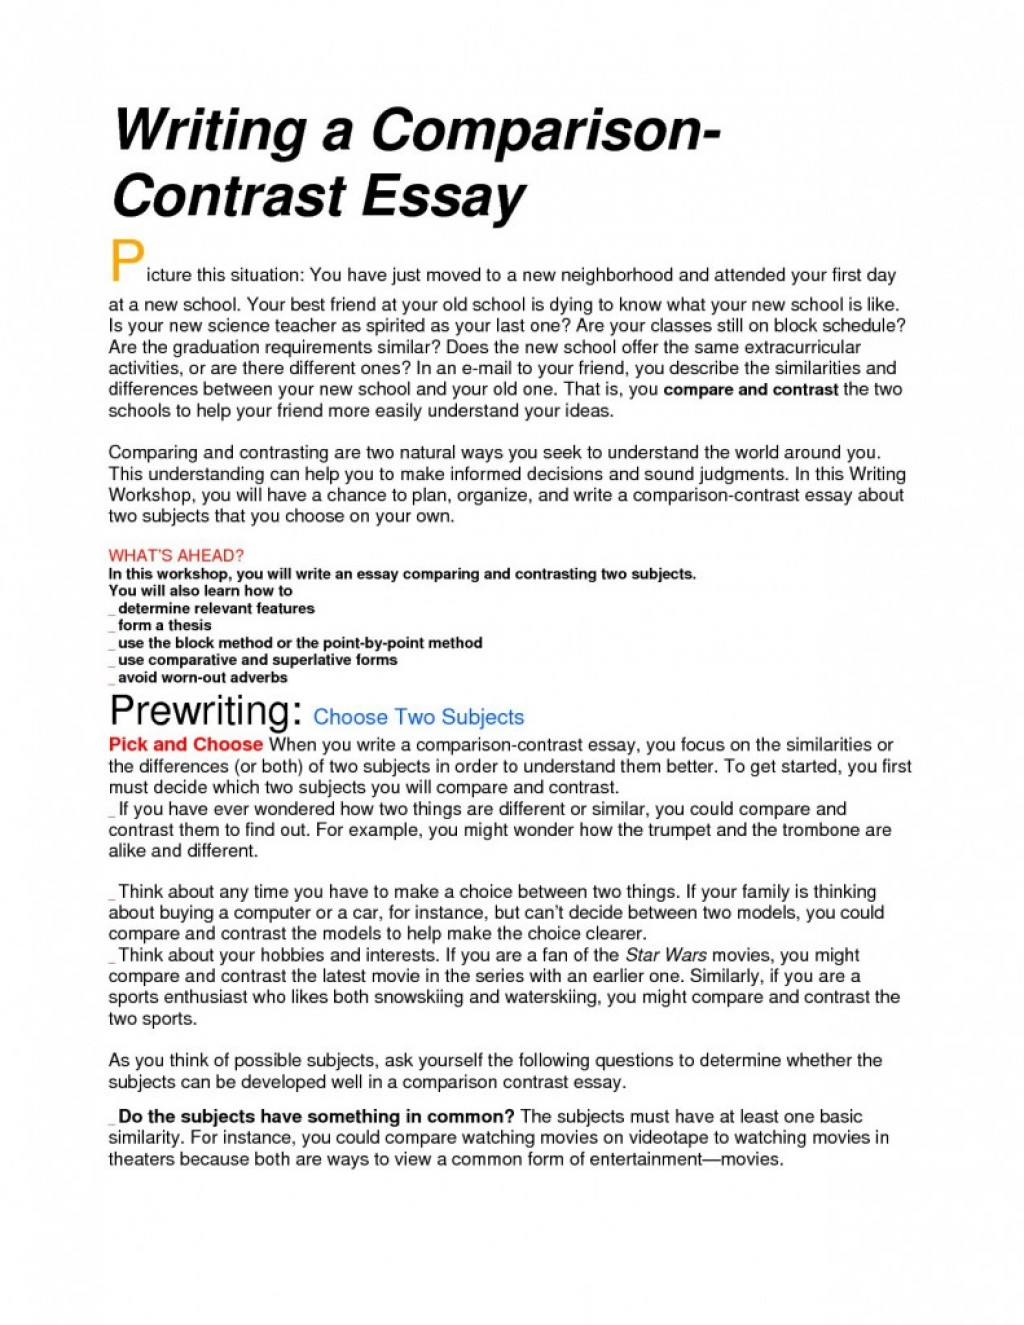 002 Essay Paperss Argumentative Topics For High School Funny College Stu Creative Students Sample Compare And Contrast Beautiful Large